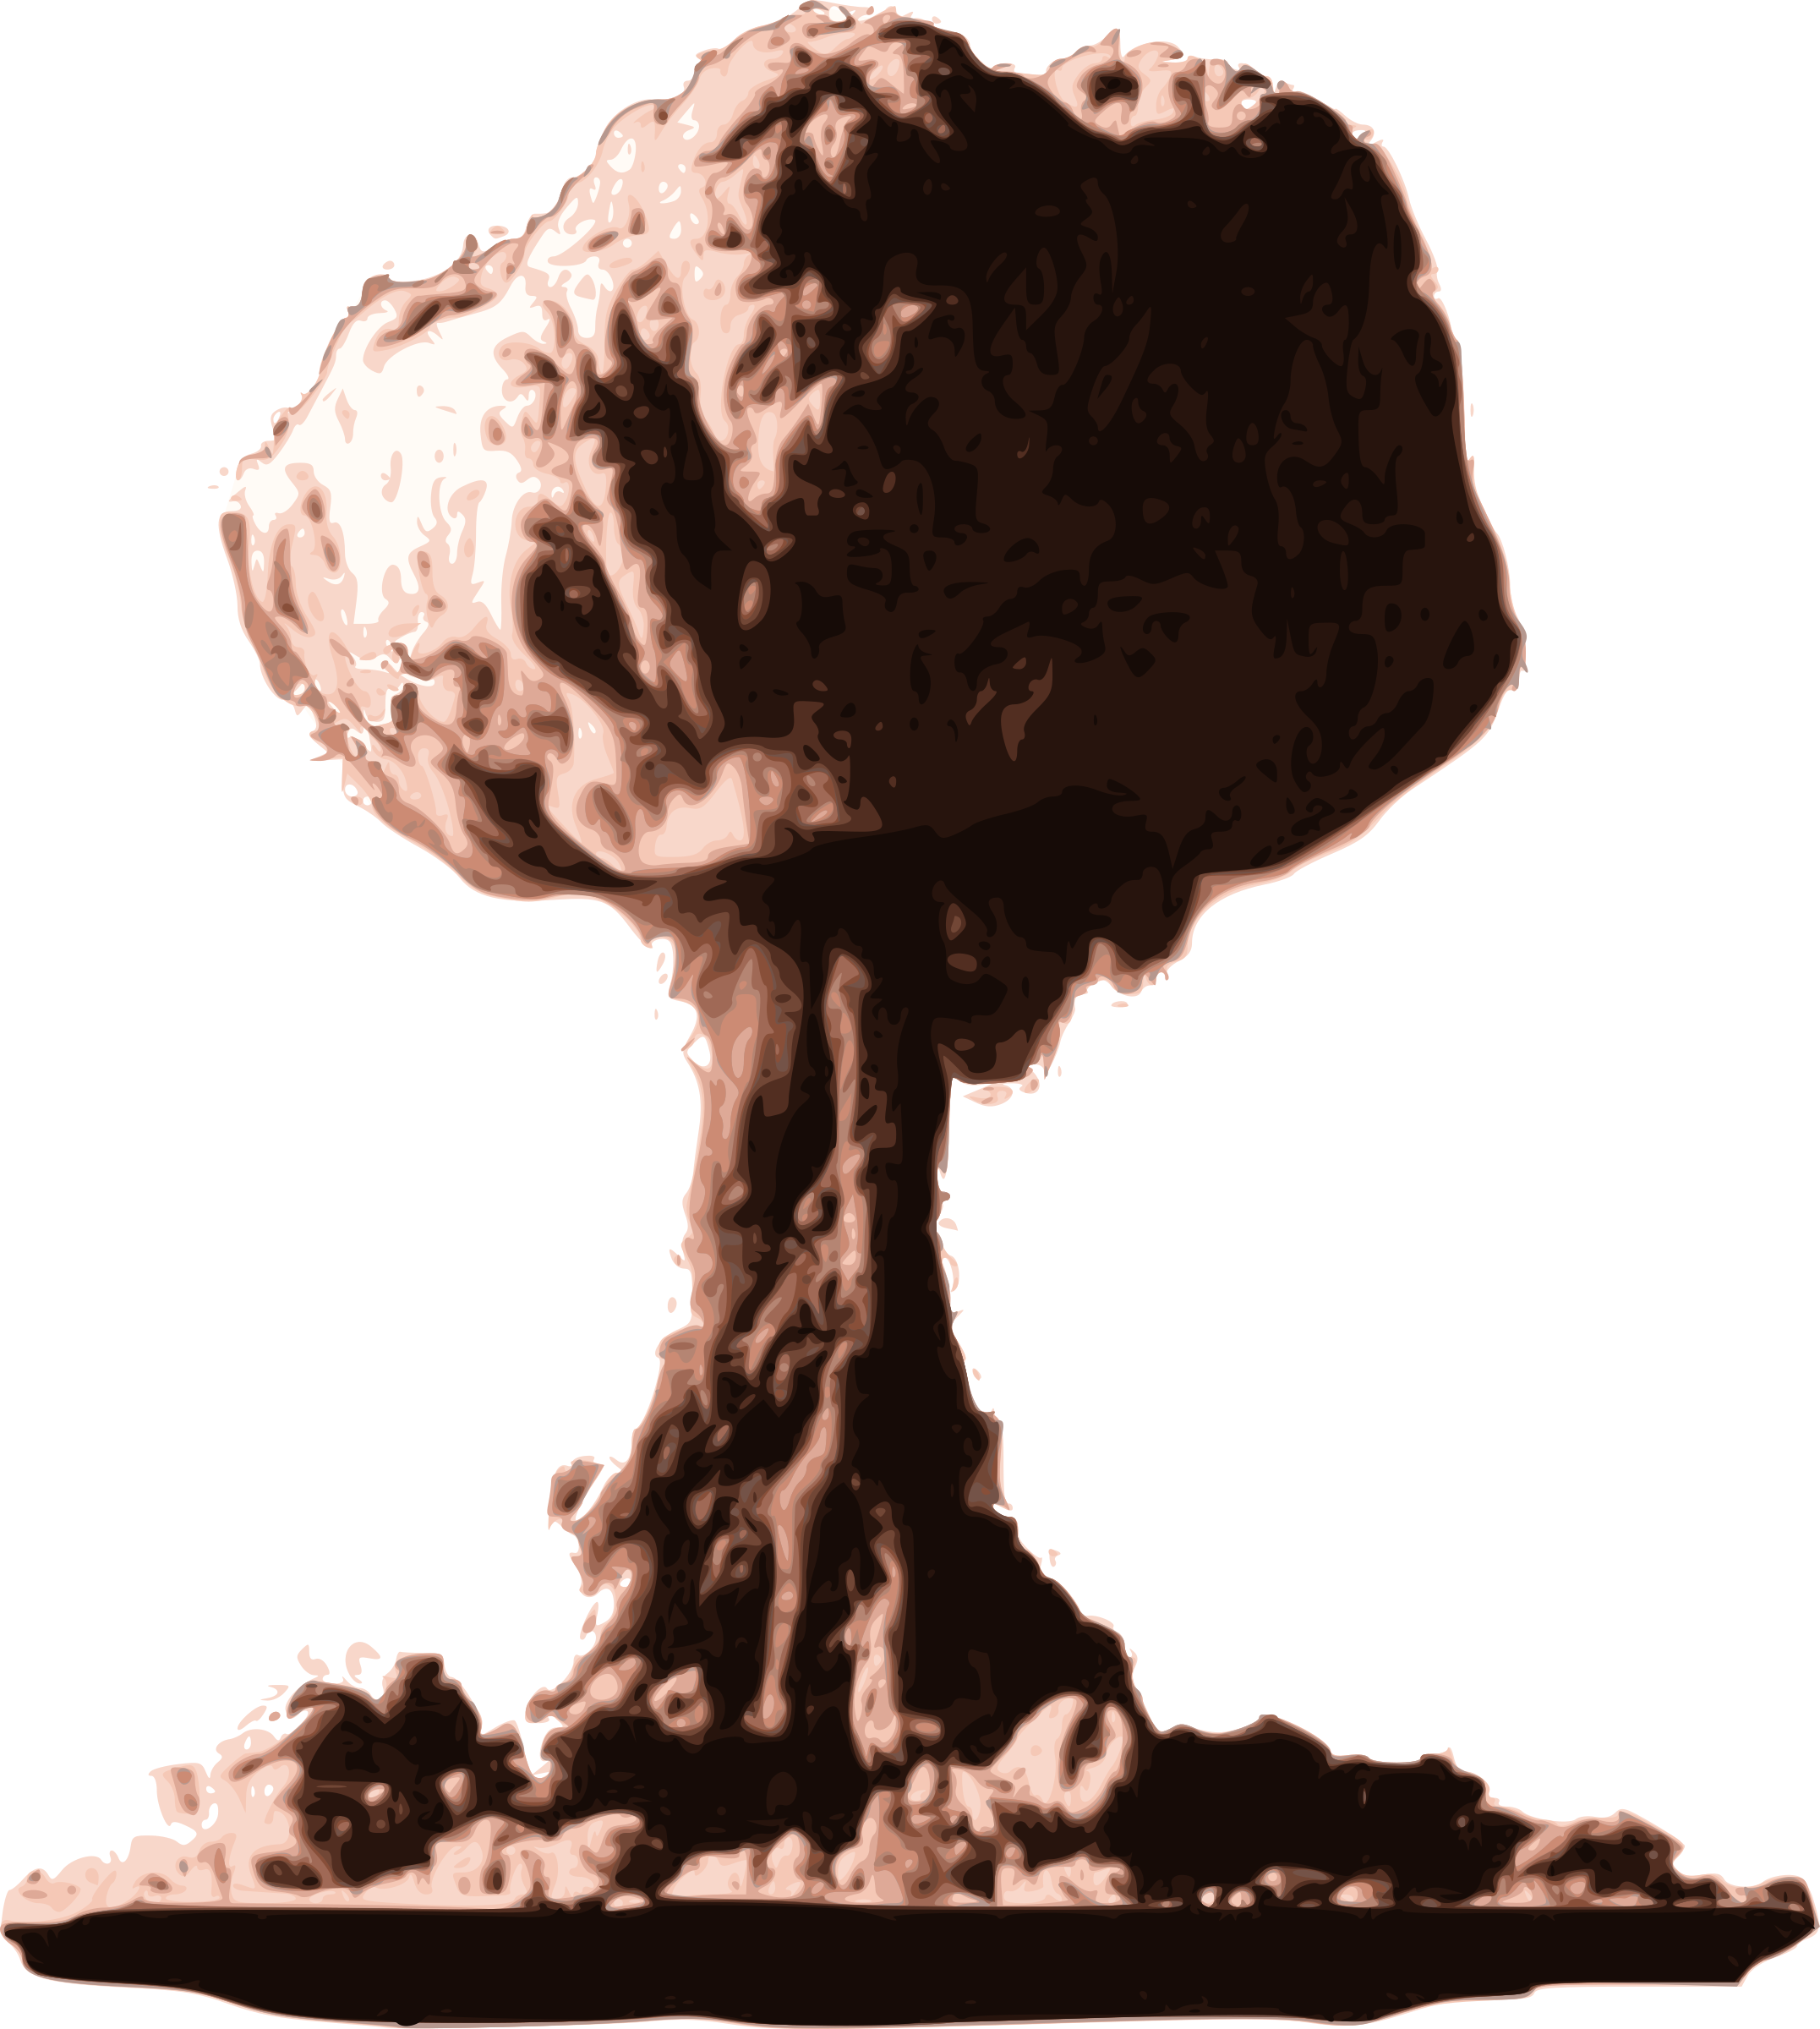 Nuclear bomb blast png. Explosion images transparent free